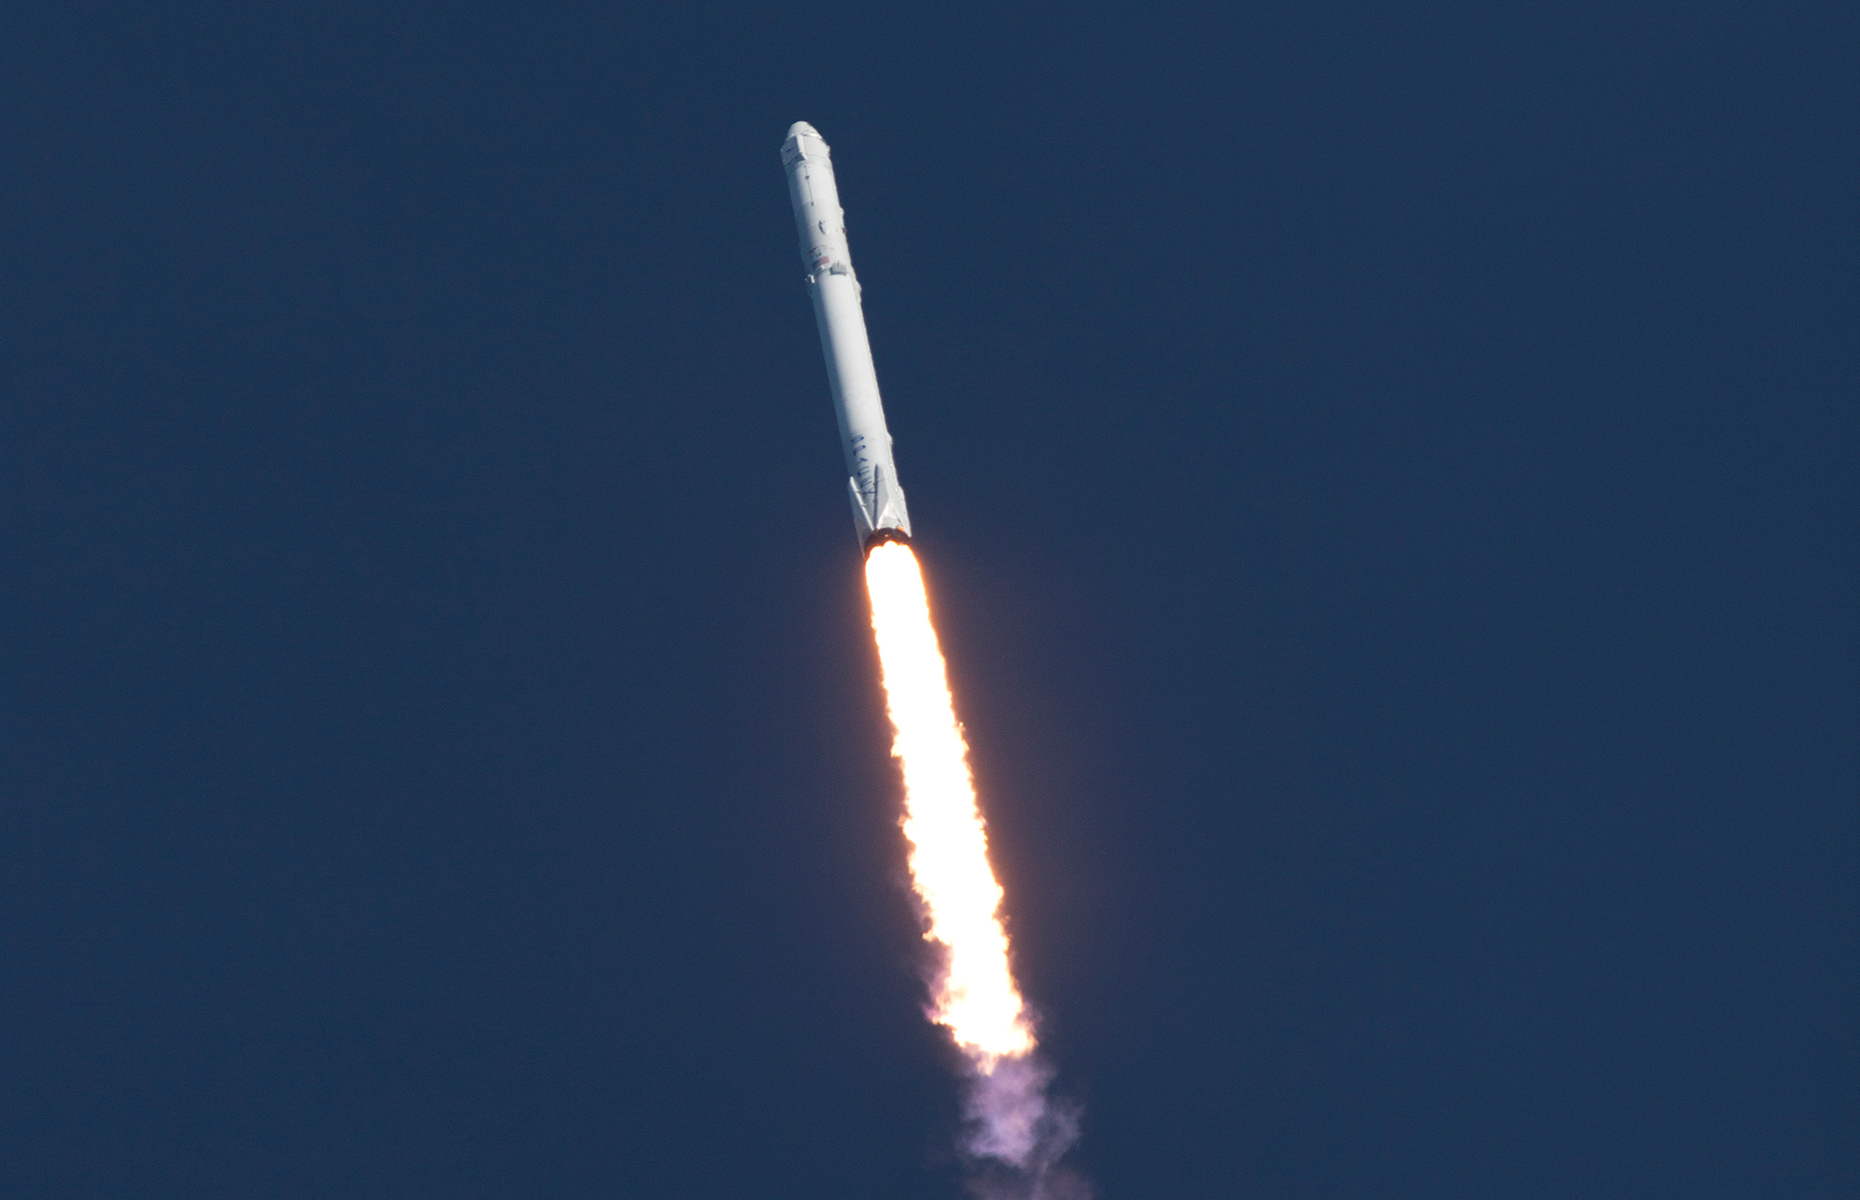 Dragon is Healthy, Beginning Pursuit of ISS | SpaceX